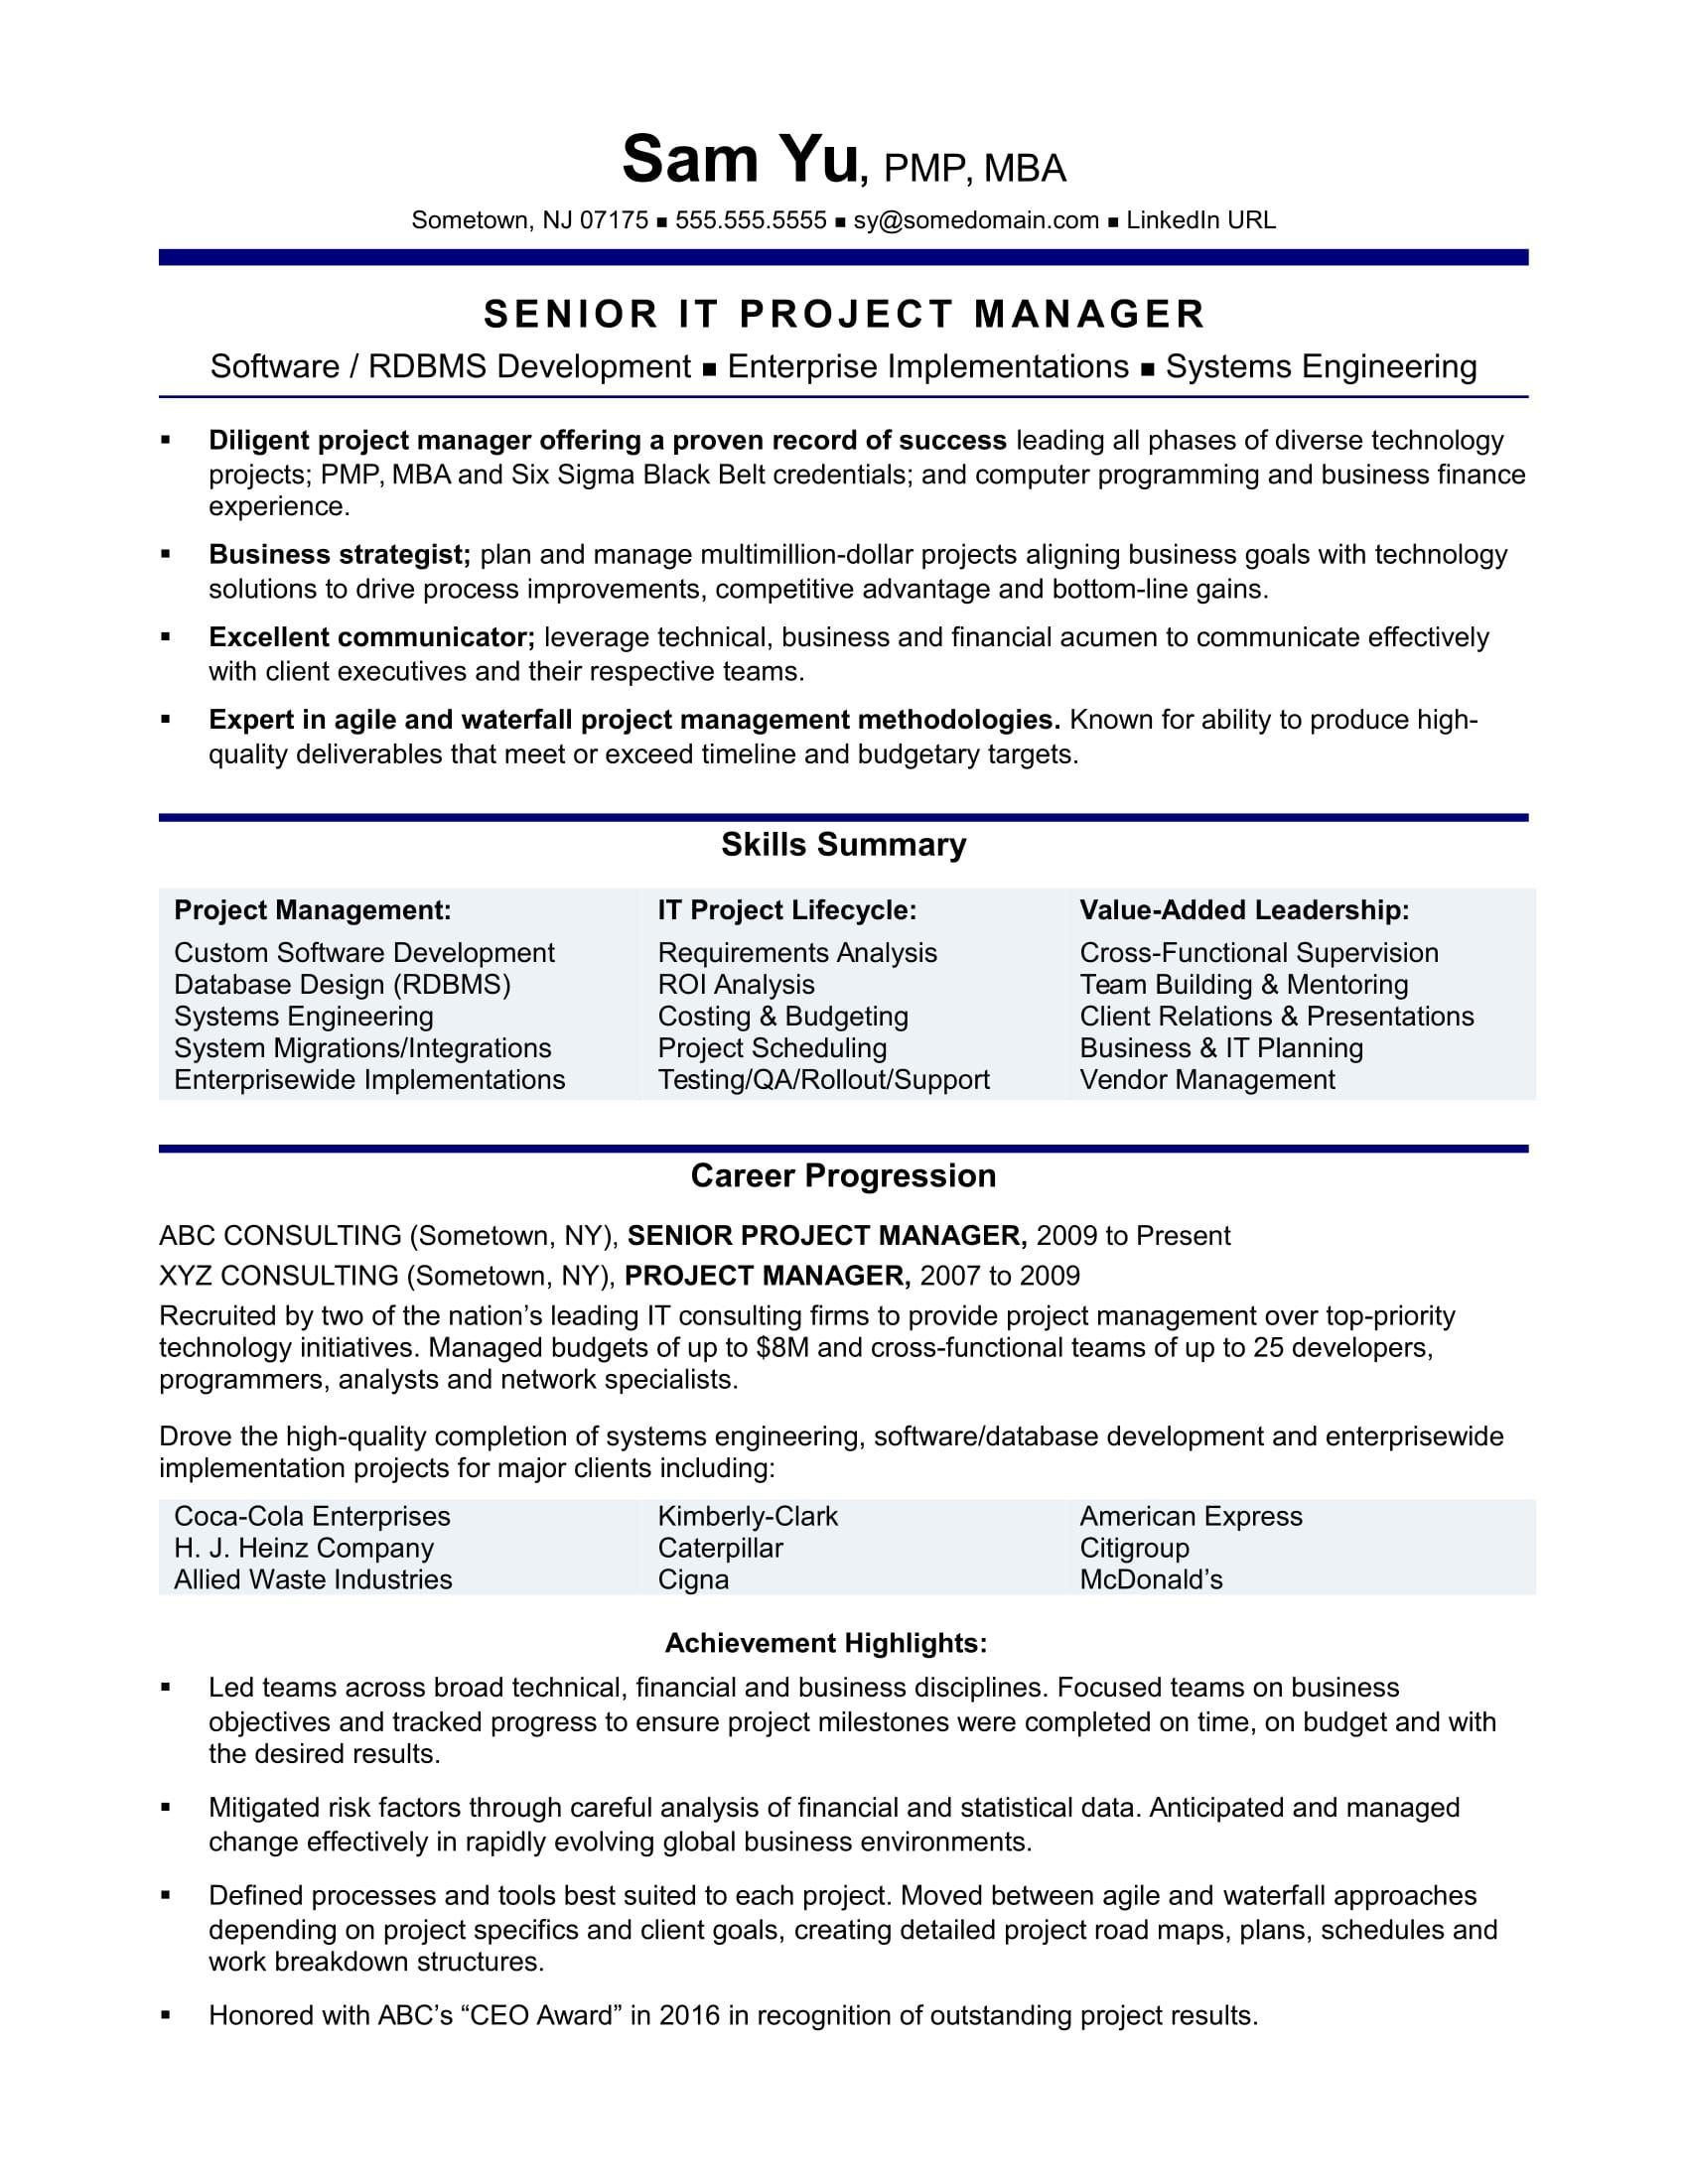 Resume Examples By Industry And Job Title Project Manager Resume